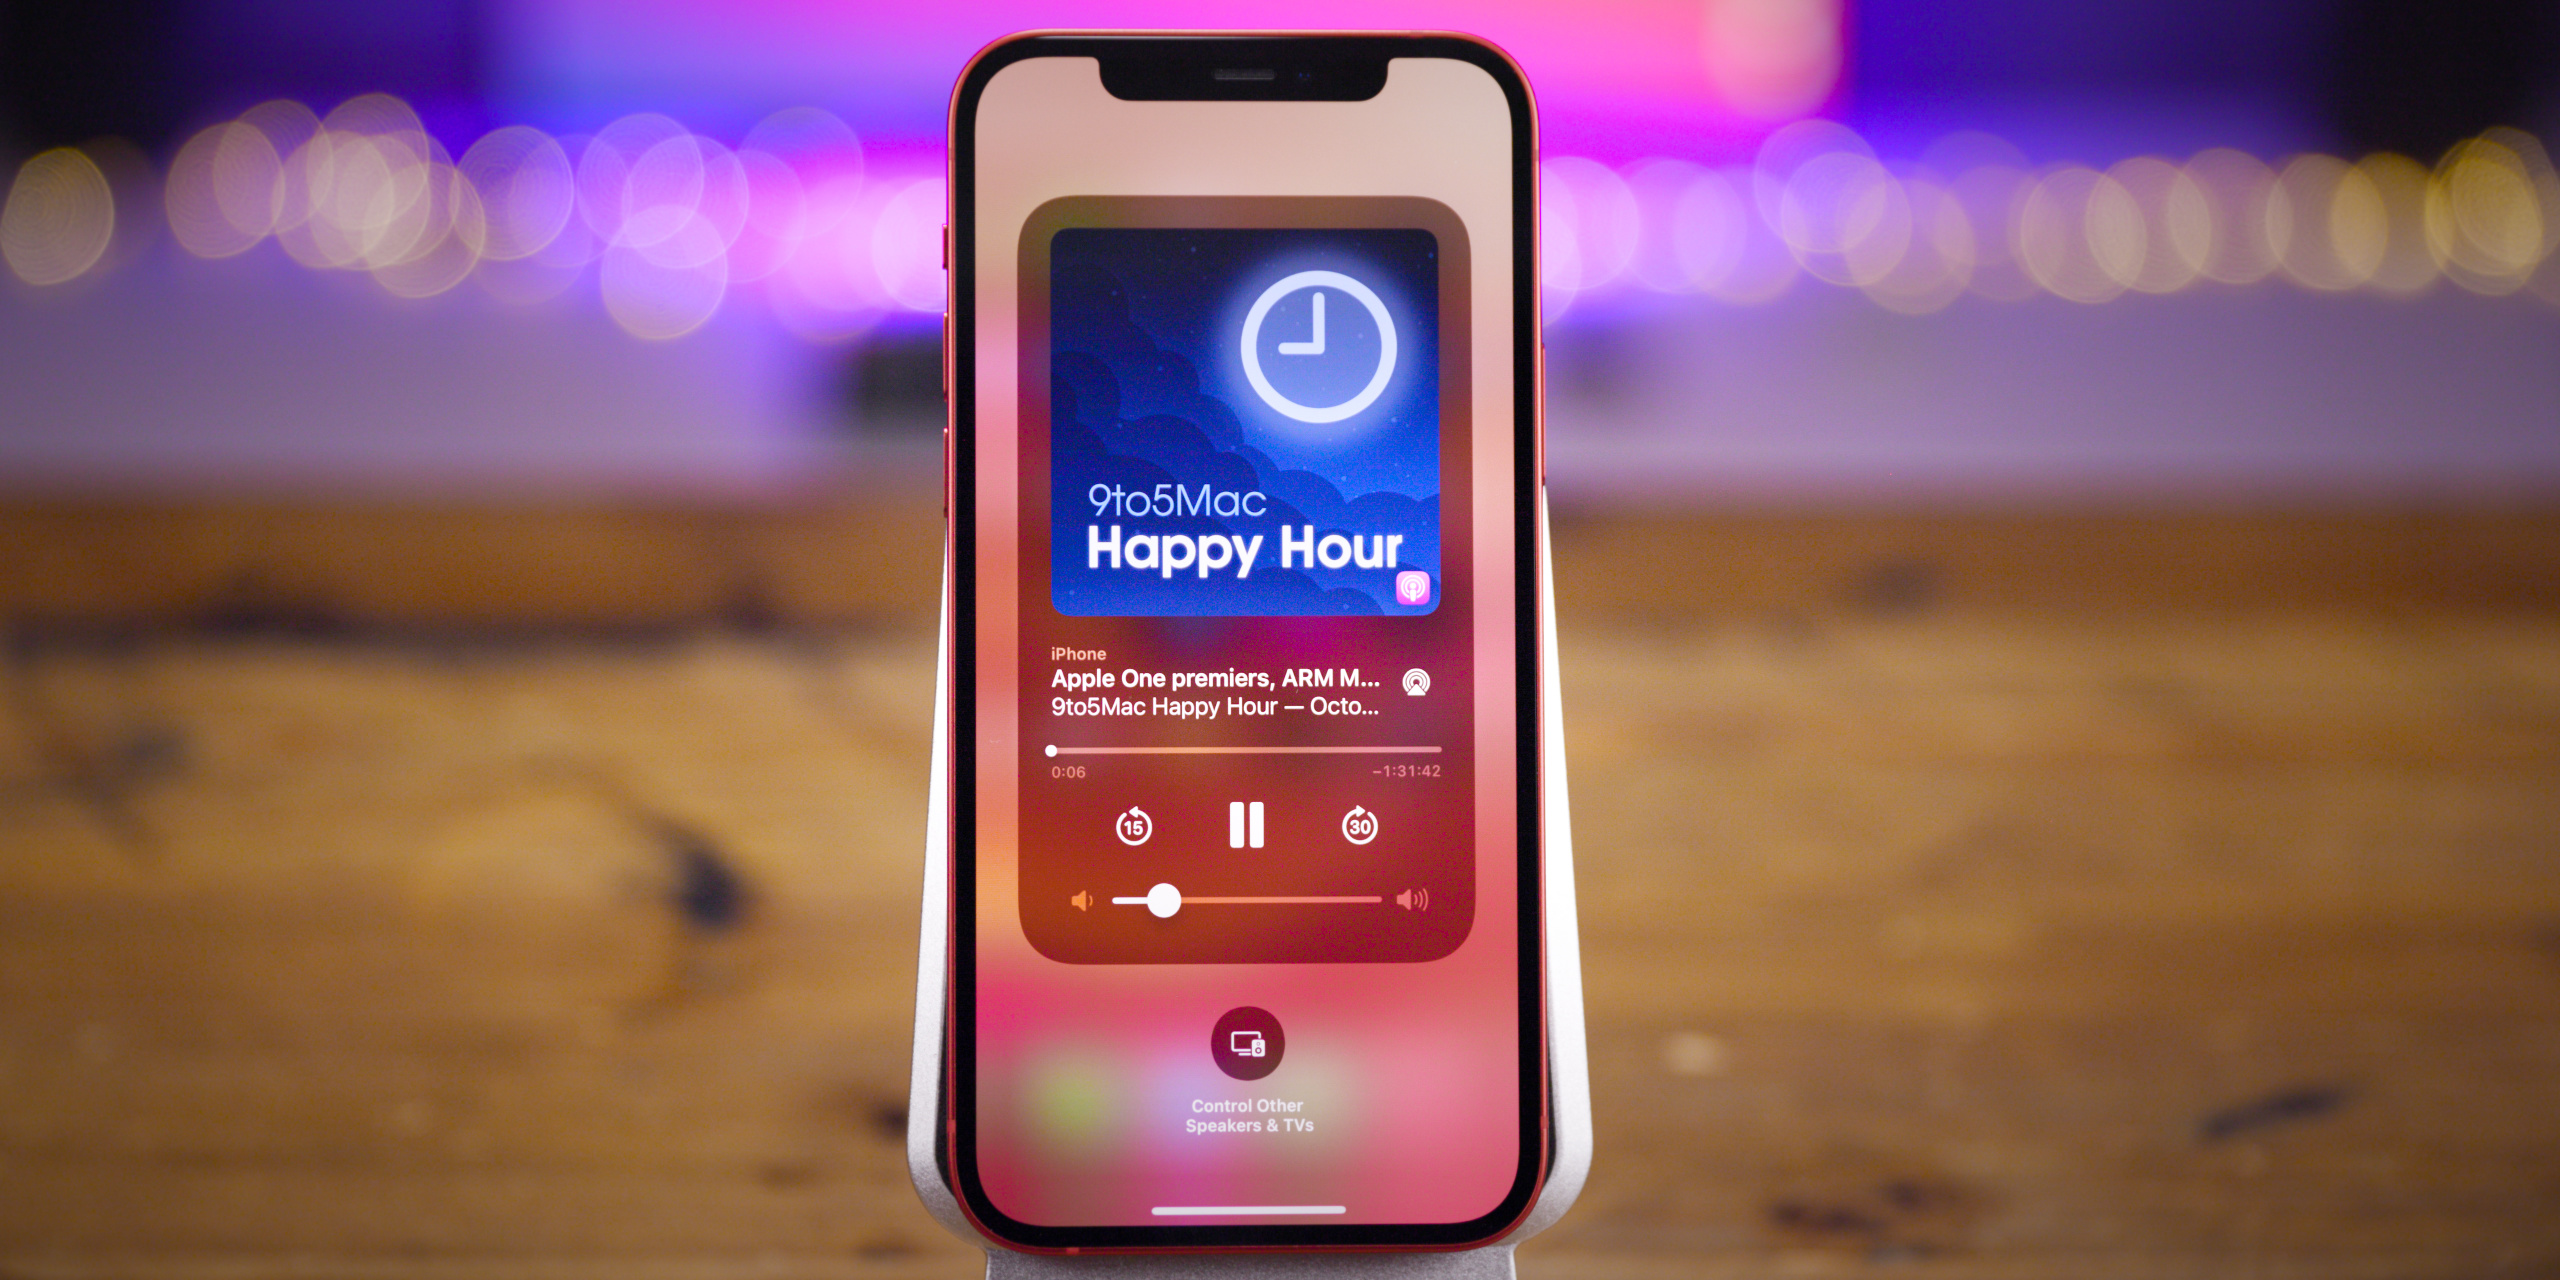 Apple releases iOS 14.4.1 with security updates for iPhone users - 9to5Mac